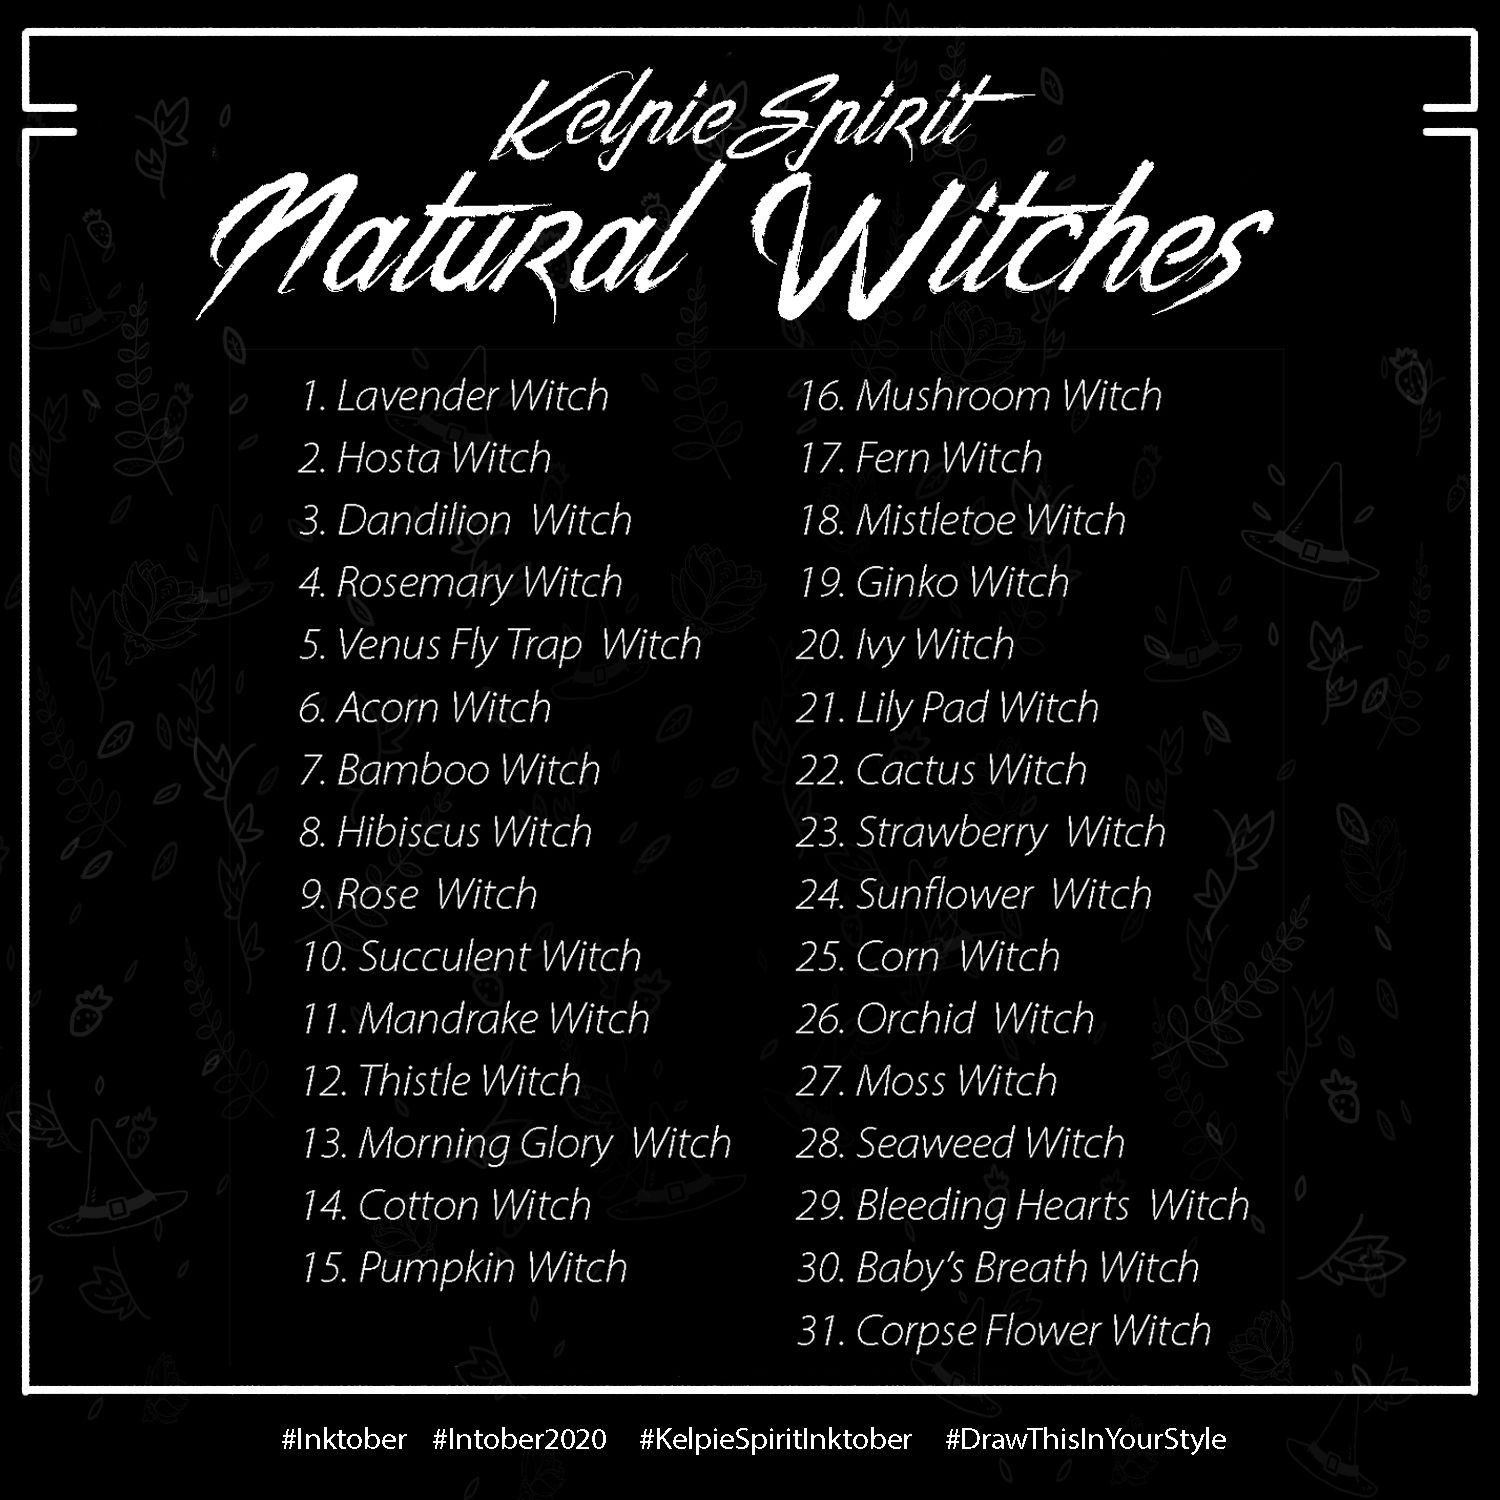 Inktober List 2020.Inktober 2020 Natural Witches By Kelpiespirit Racheal